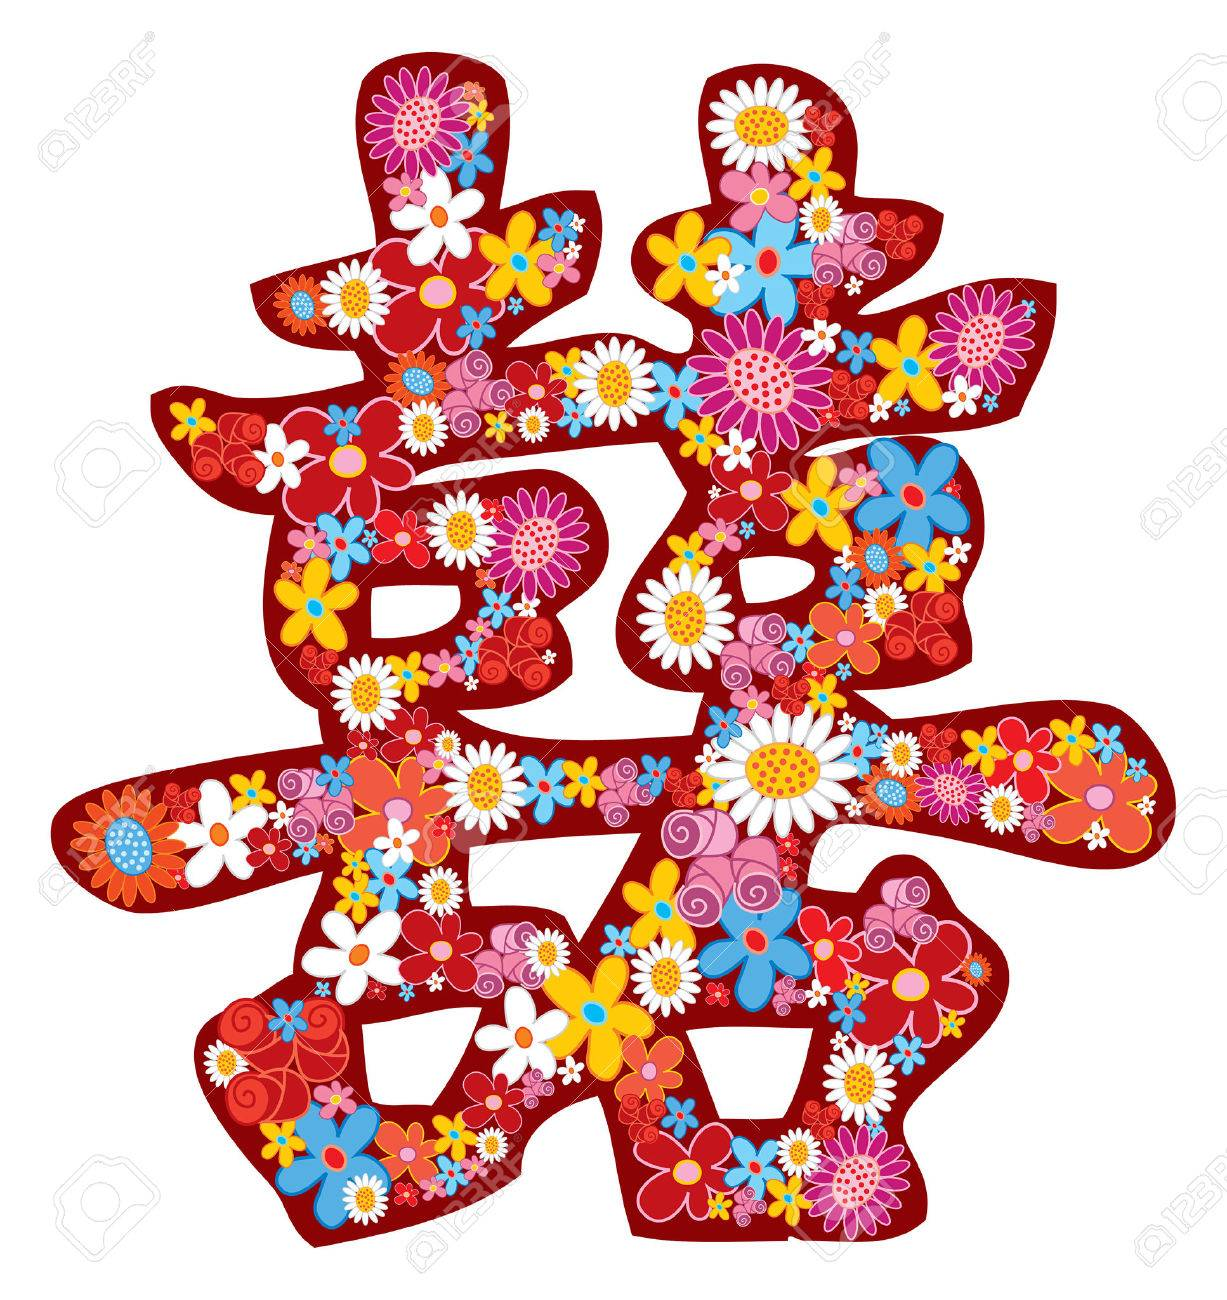 Flower Power Double Happiness Illustration Chinese Word Royalty